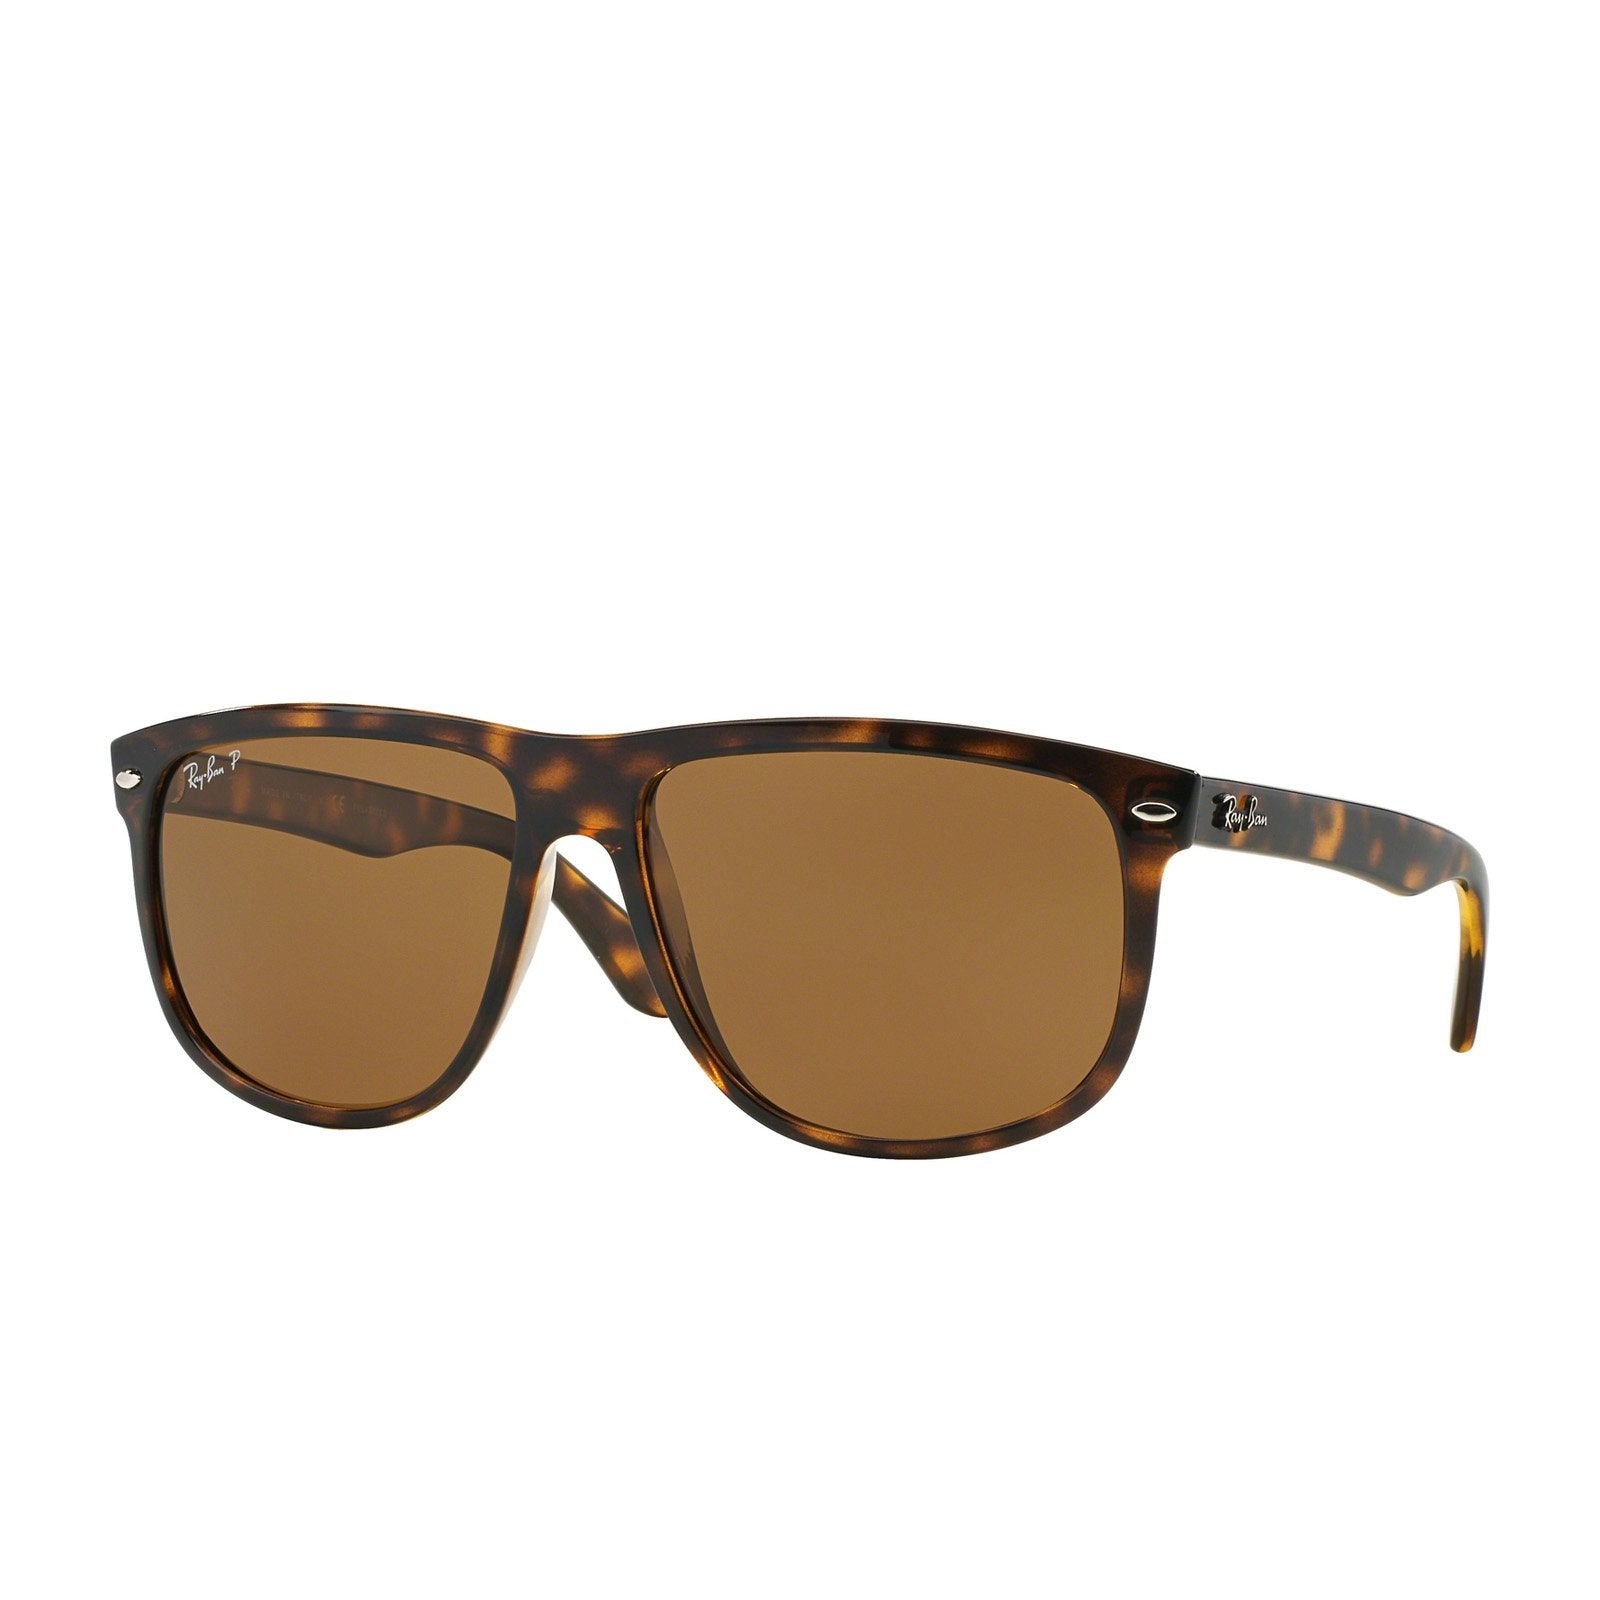 Ray-Ban RB4147 710/57 Sunglasses